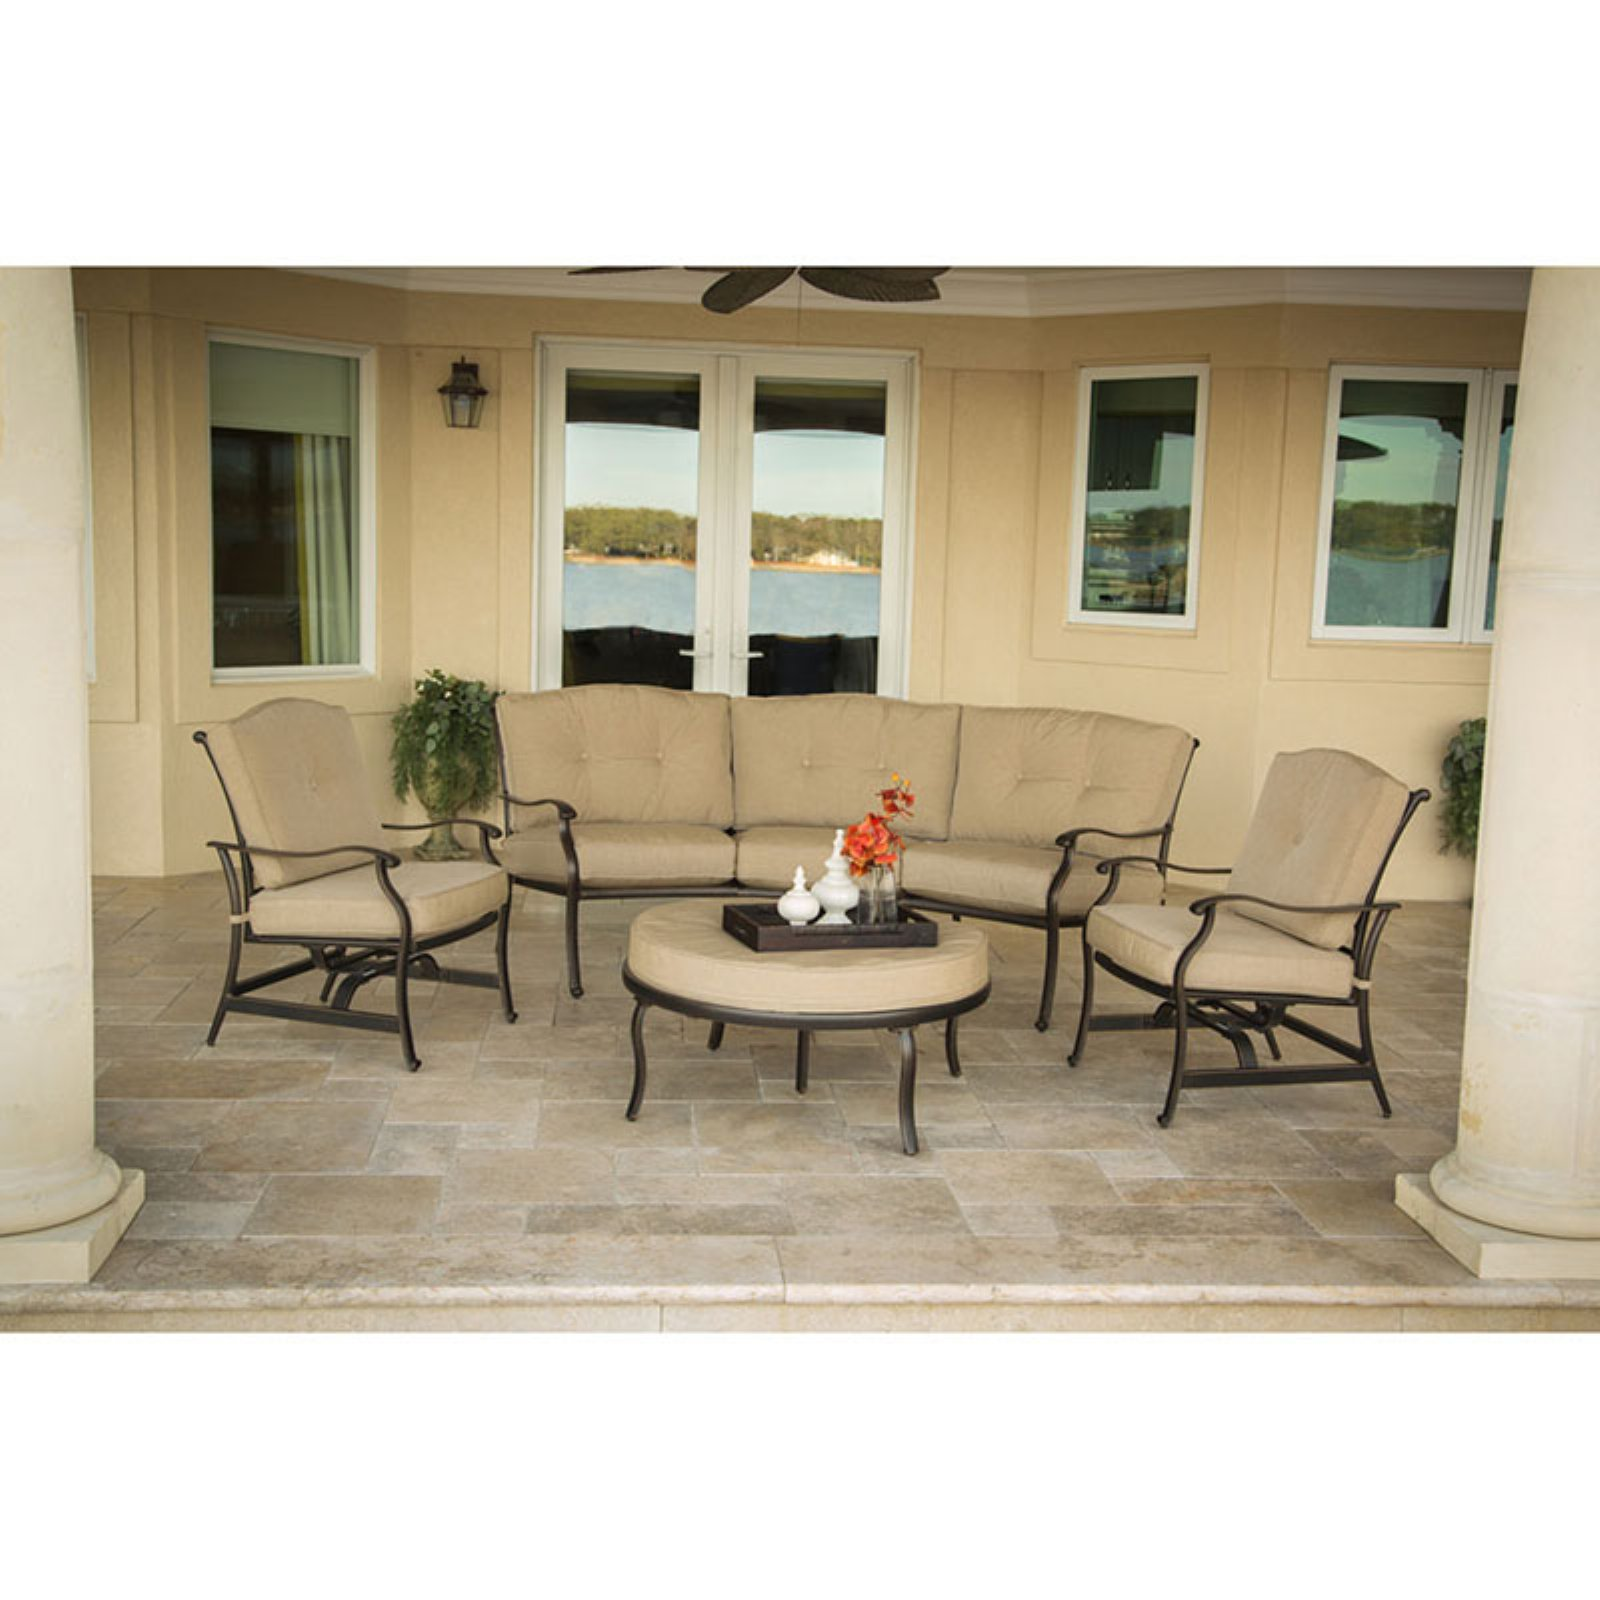 Hanover Traditions 4-Piece Outdoor Patio Set Beige TRADITIONS4PC